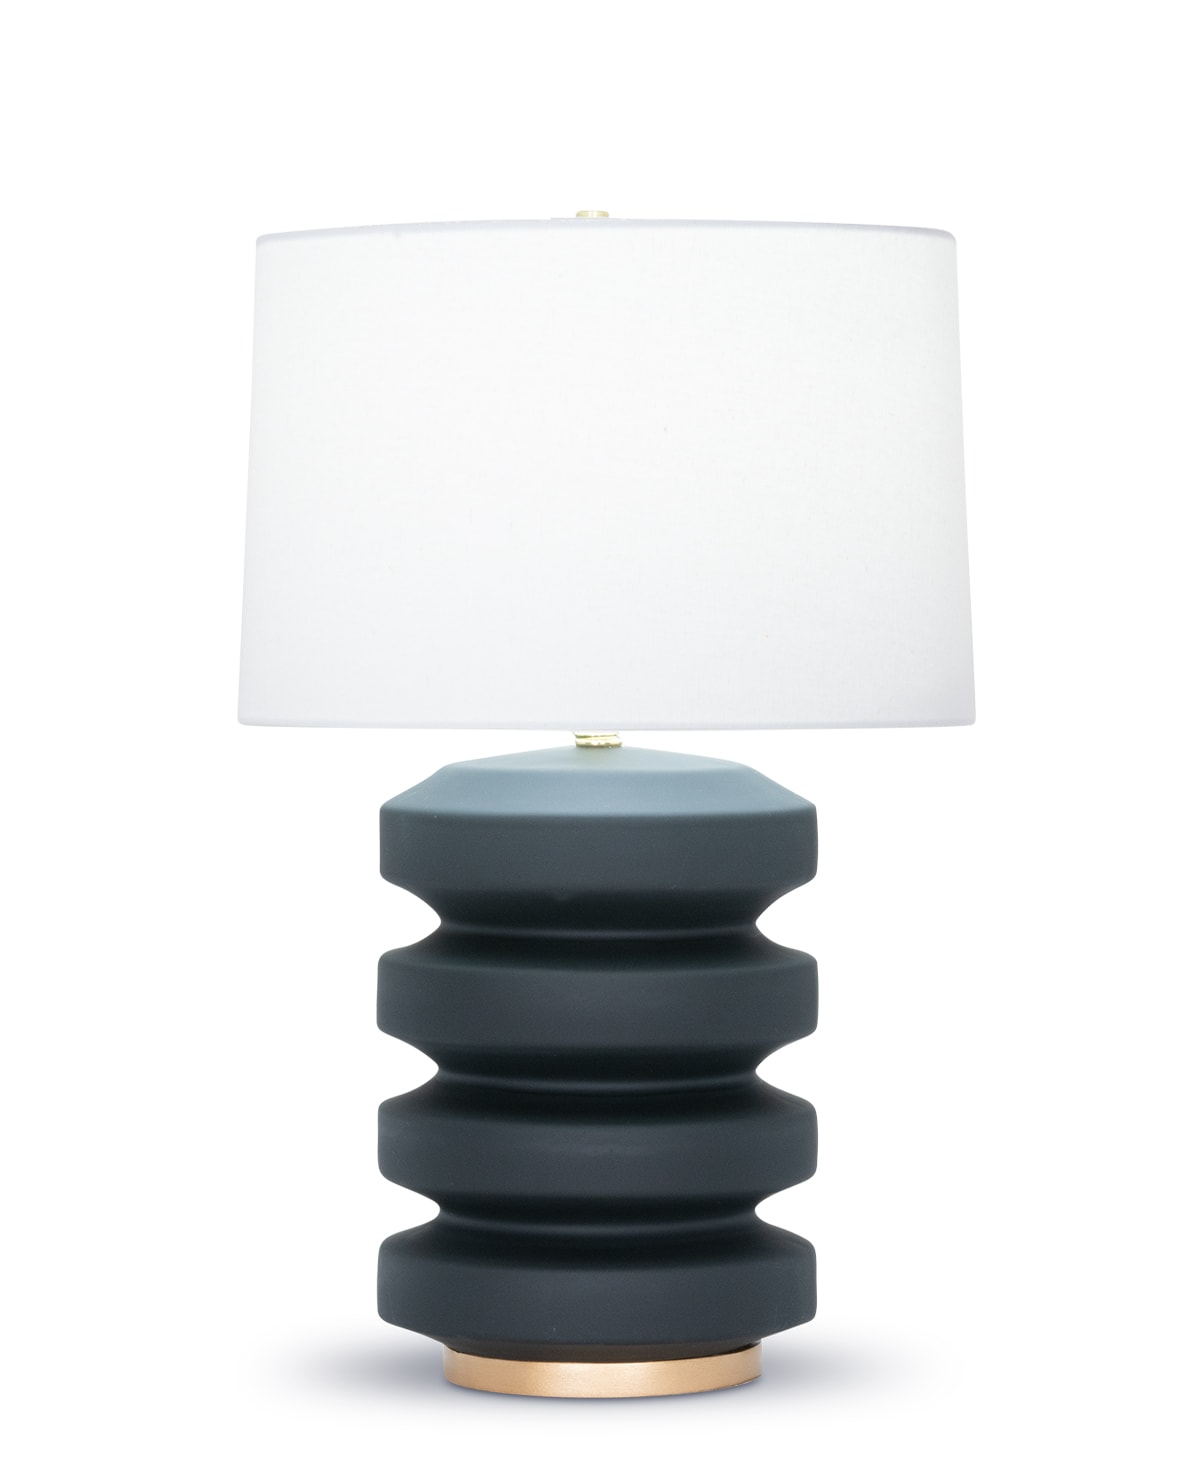 FlowDecor Ruth Table Lamp in ceramic with black matte finish and resin base with gold finish and off-white cotton tapered drum shade (# 4484)